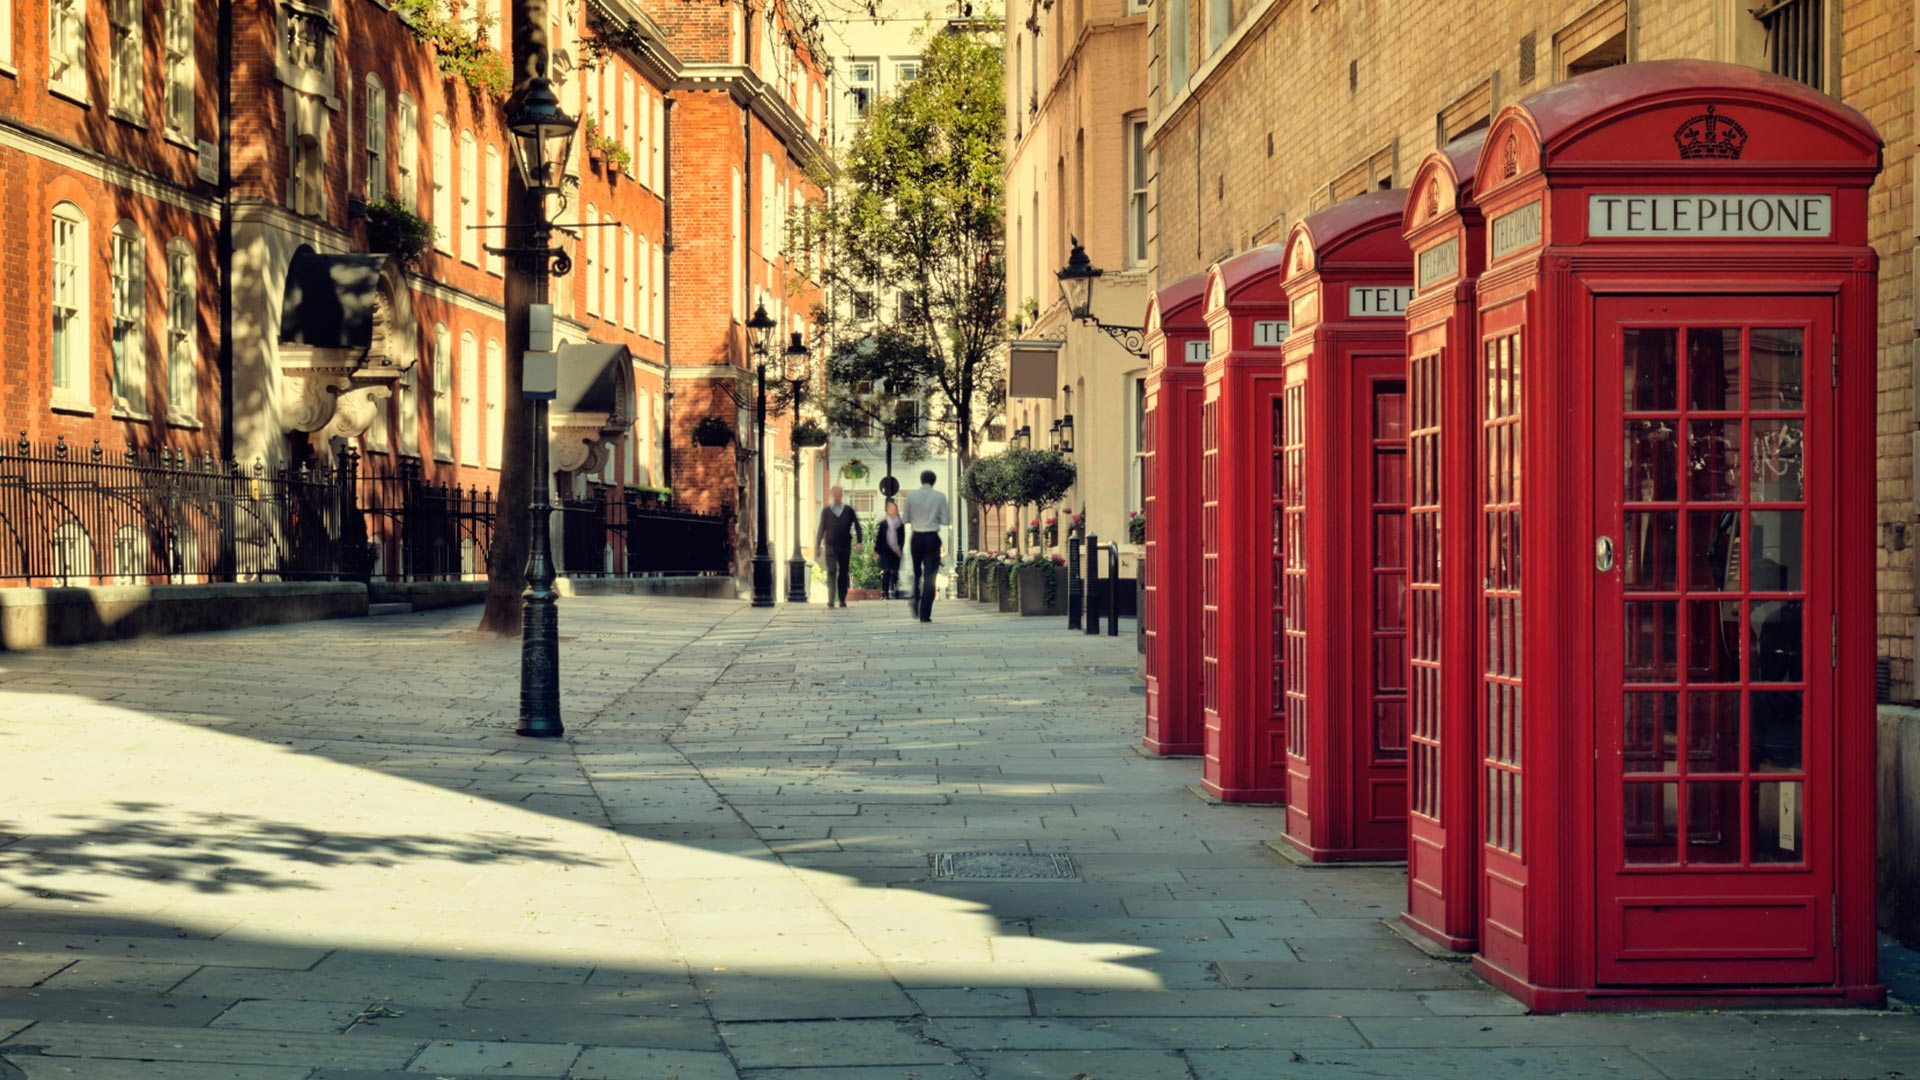 London street view of red phone boxes | Branding & Web Design | Noho Film & Television